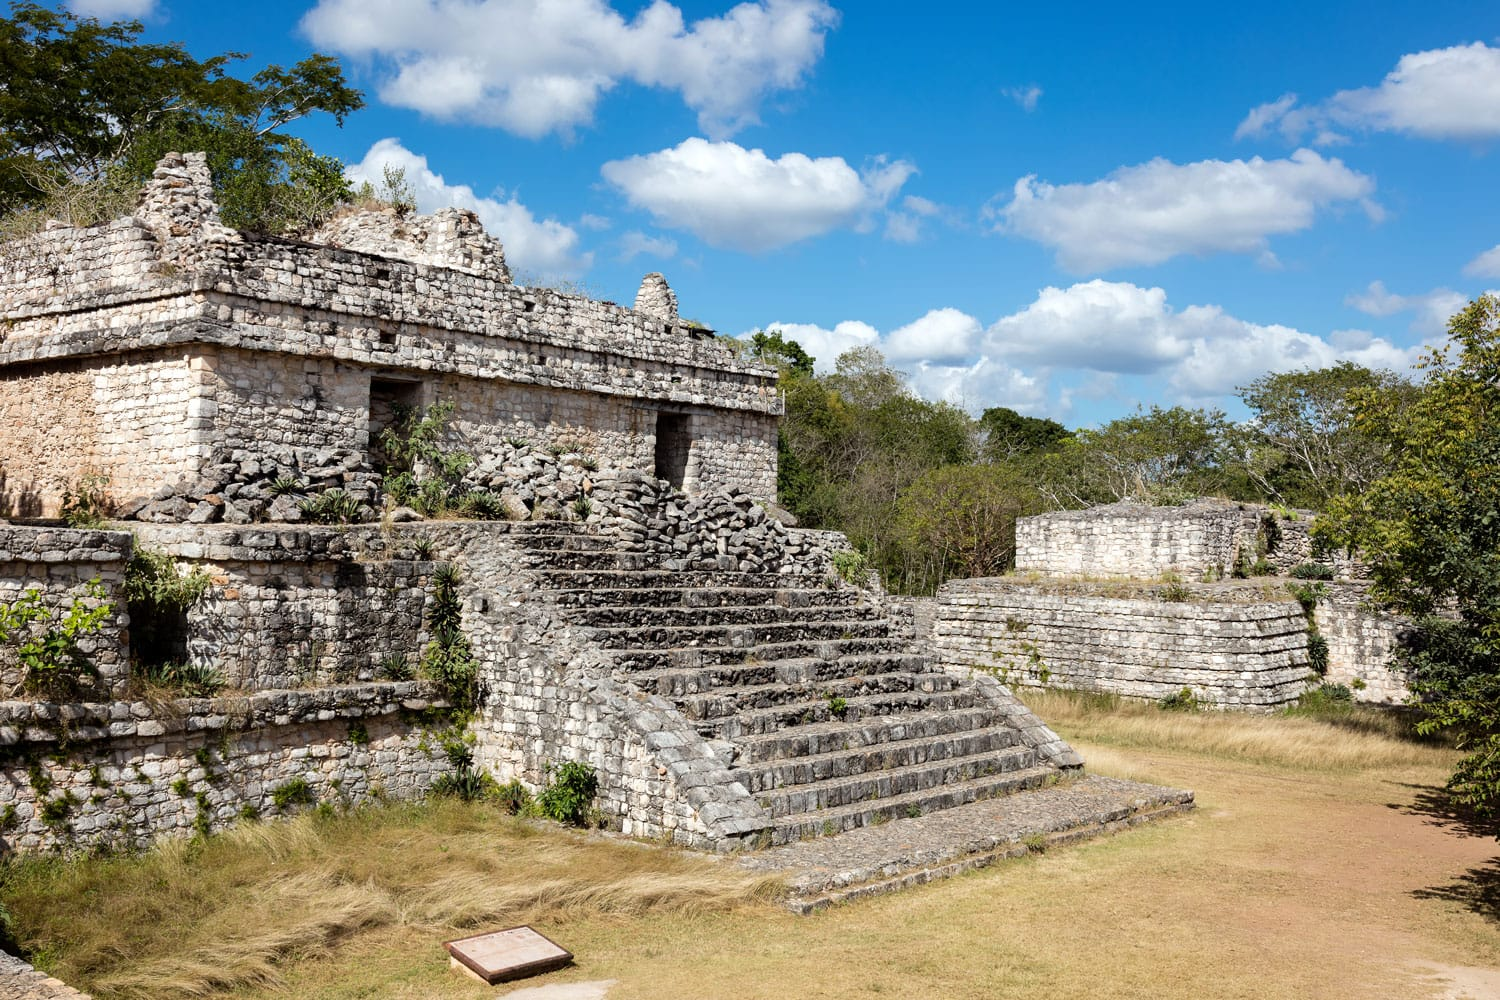 Ruins of the ancient Mayan temple in Ek Balama in Temozon, Yucatan, Mexico